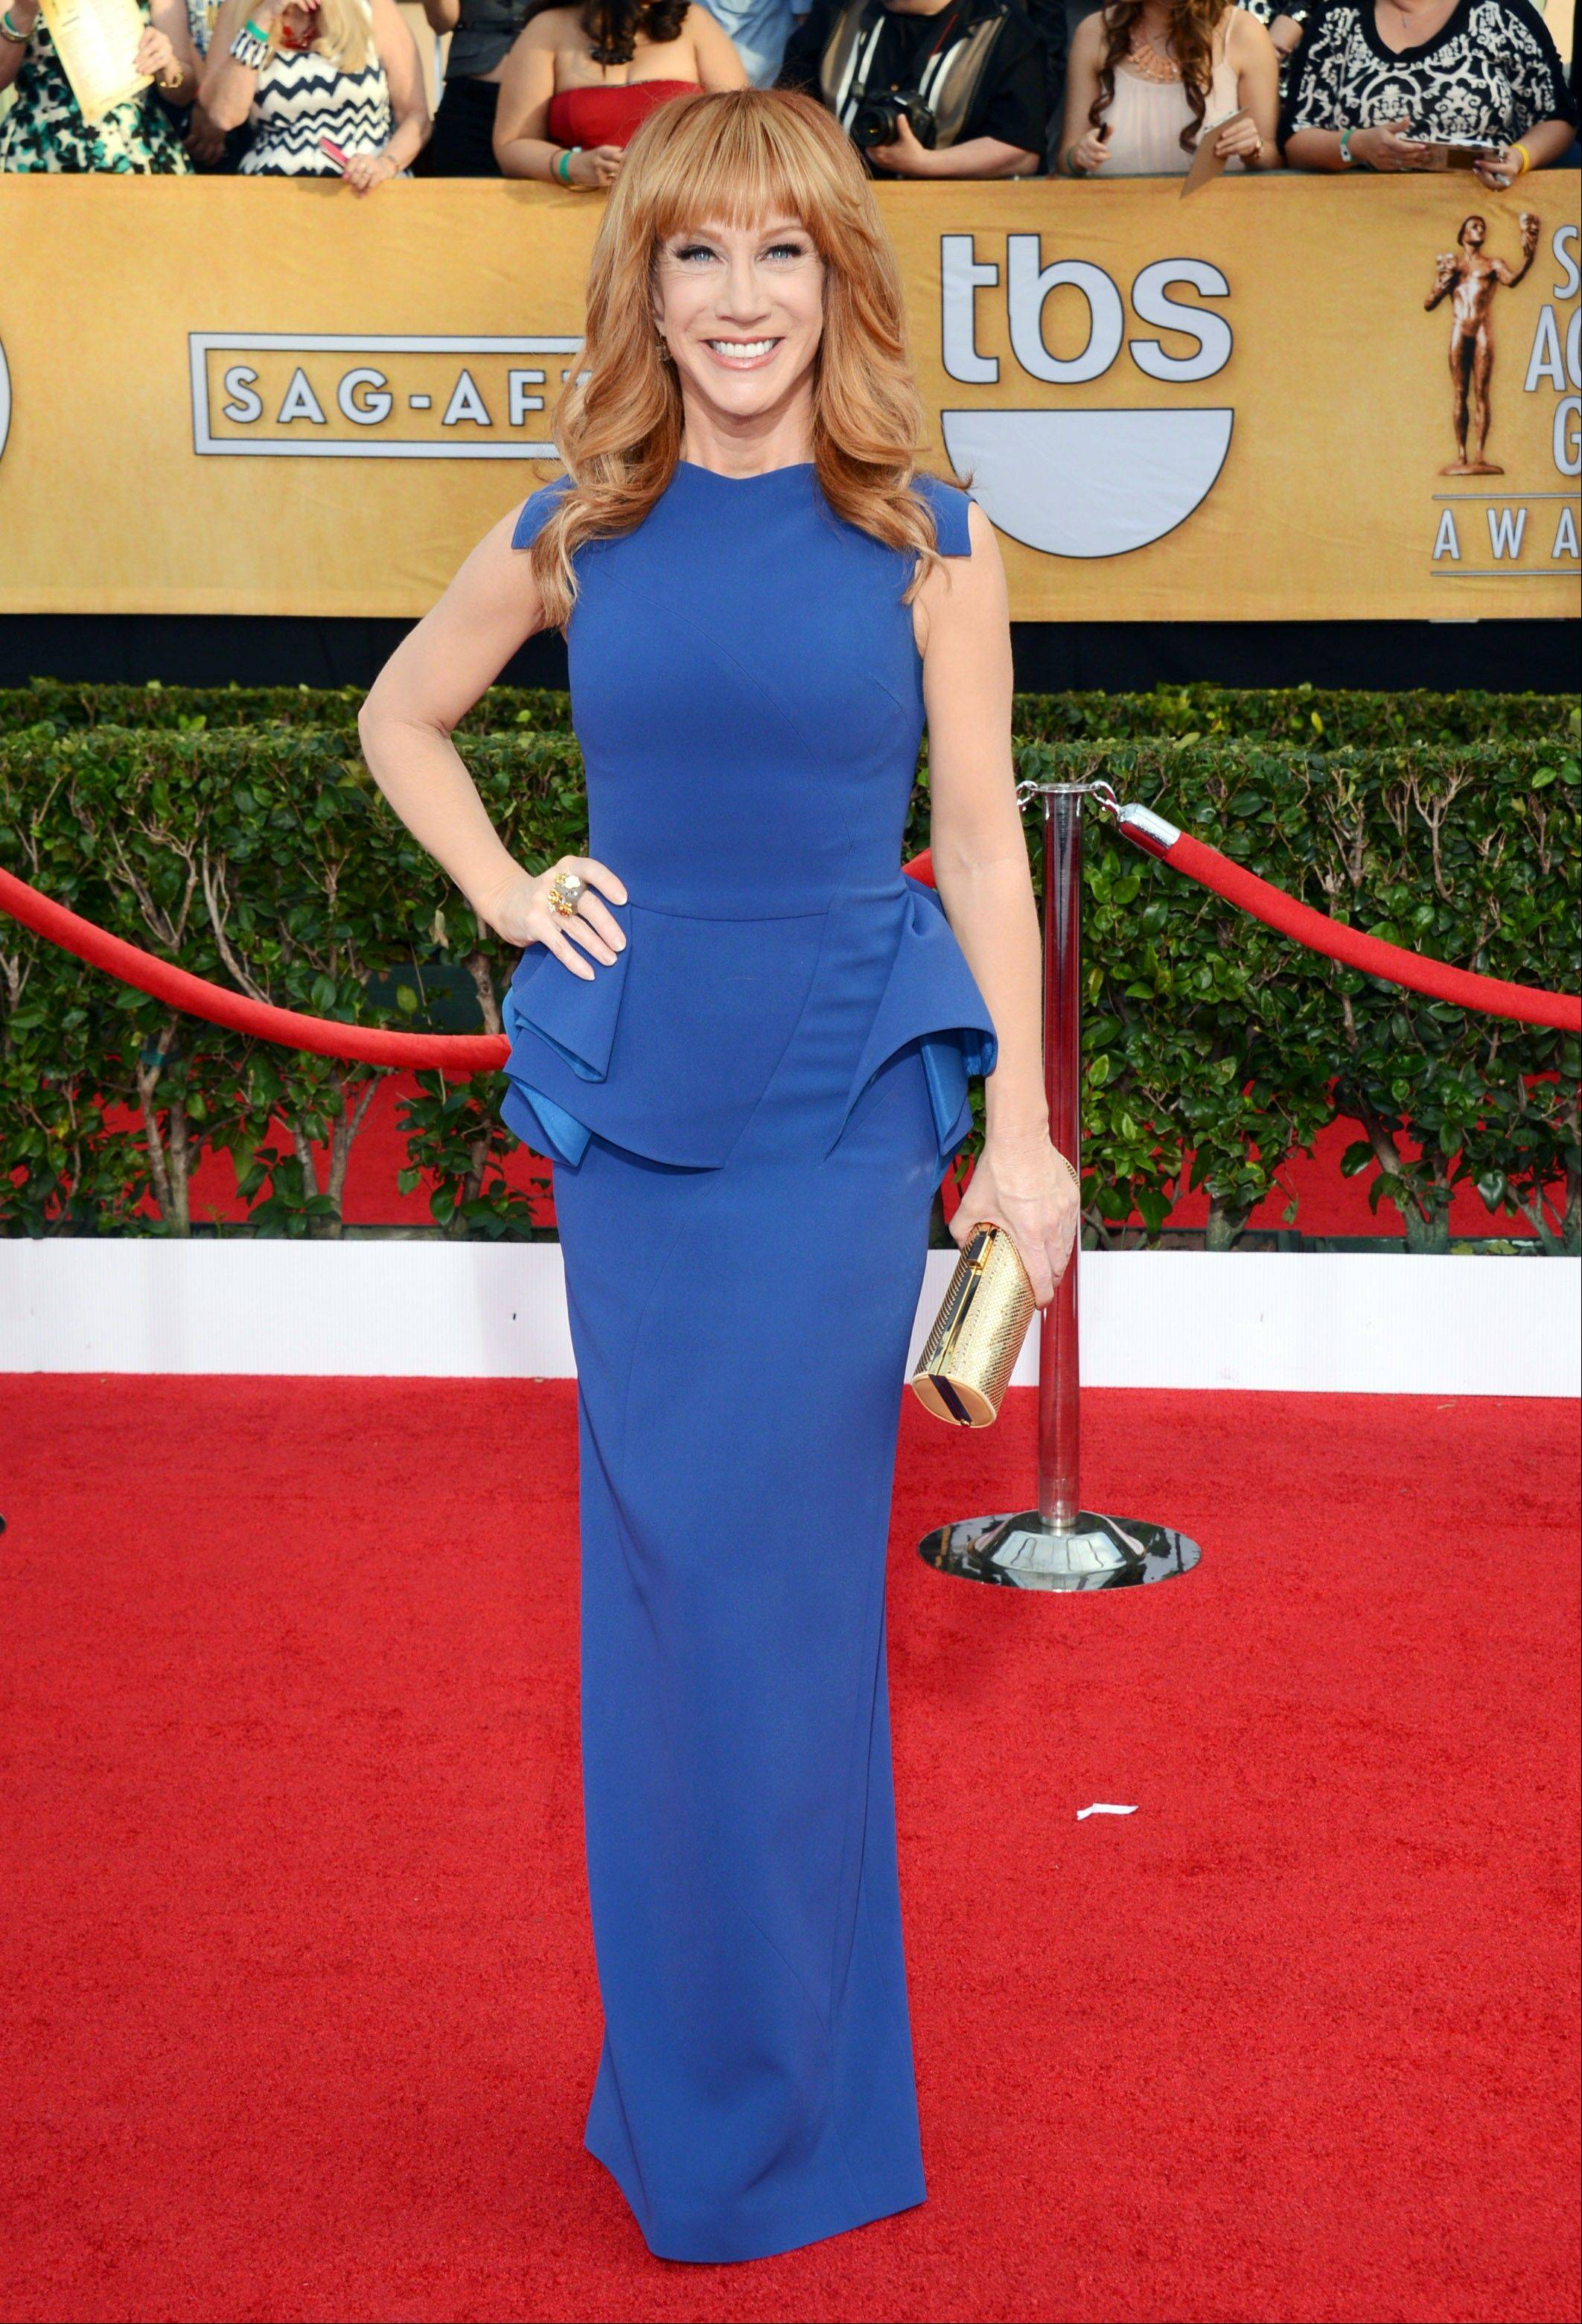 Kathy Griffin arrives at the 20th annual Screen Actors Guild Awards.